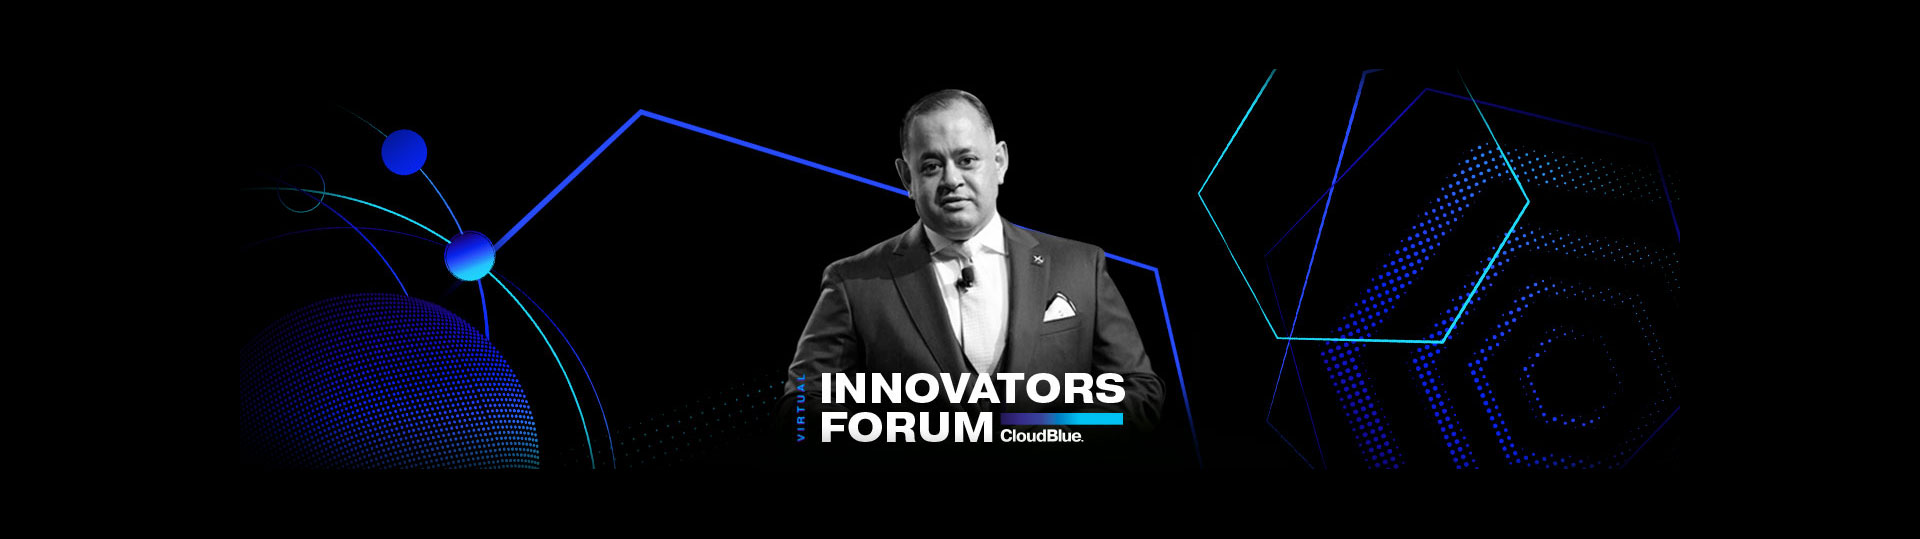 Innovator's Forum 2020: Sharing in the Journey, Powering What's Next